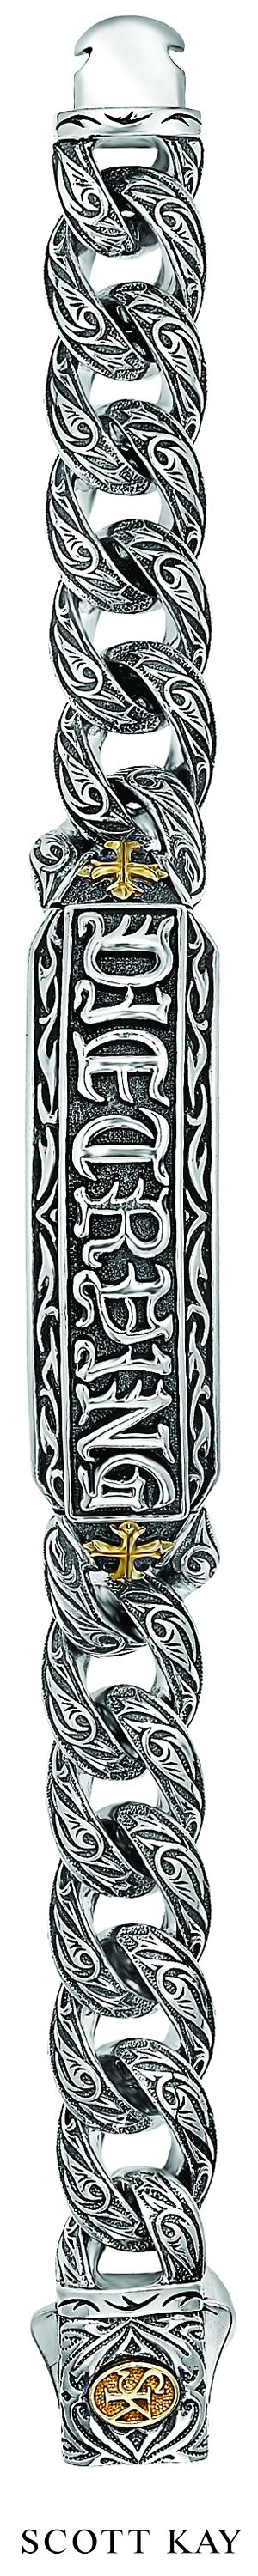 Mens Sterling Silver Die Trying Bracelet with 18K Accents $1,600.00 #ScottKay     http://www.scottkay.com/die-trying-bracelet/d/1534_c_201